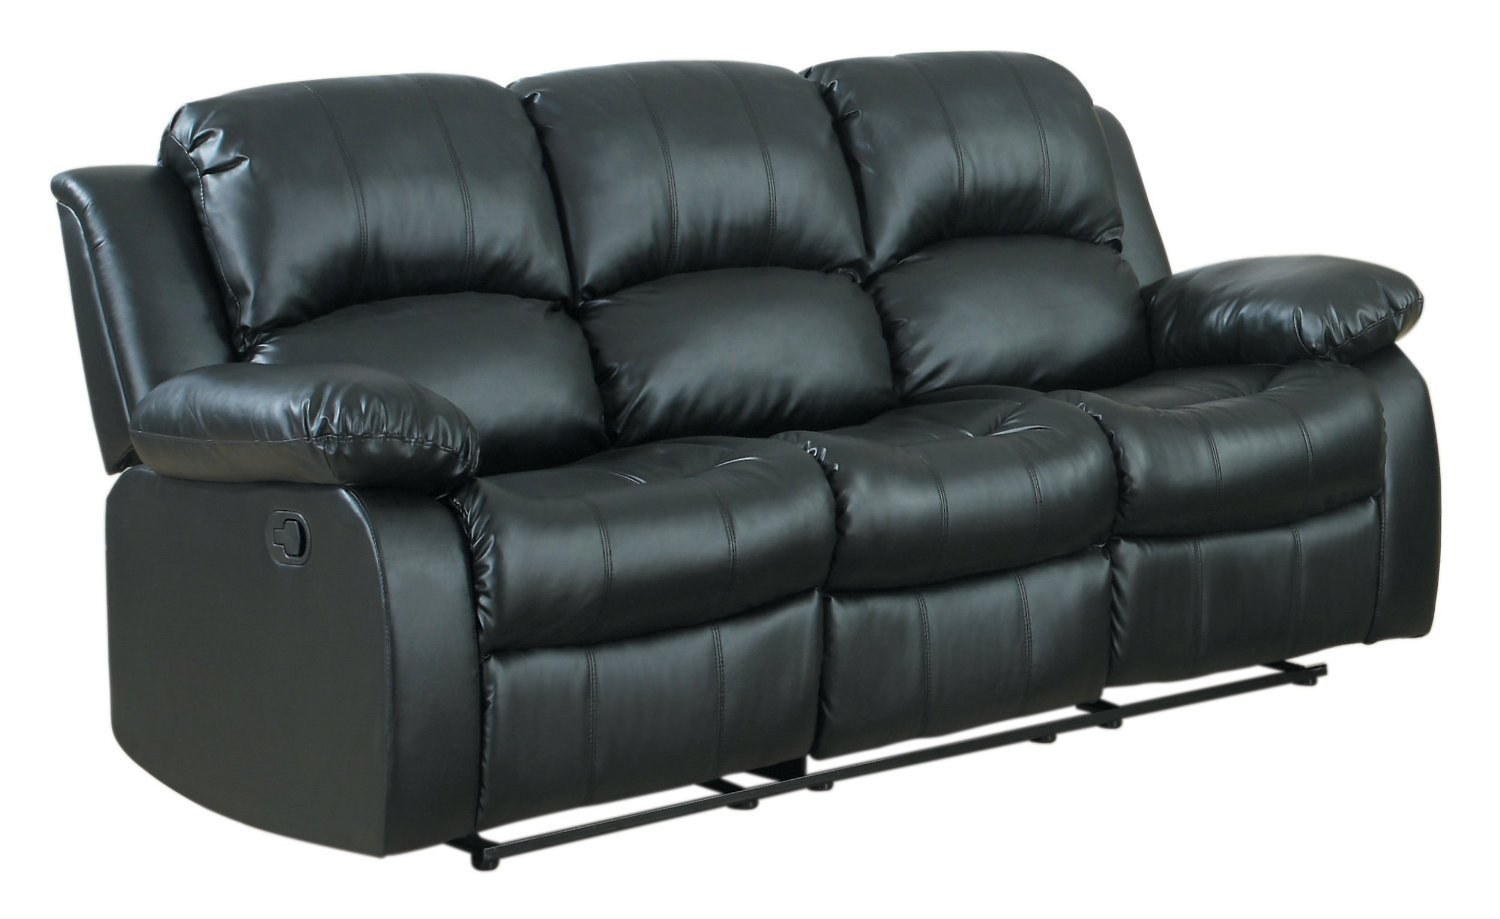 Amazon.com 3 seat Sofa Double Recliner Black / Brown Bonded Leather (Black) Kitchen u0026 Dining  sc 1 st  Amazon.com & Amazon.com: 3 seat Sofa Double Recliner Black / Brown Bonded ... islam-shia.org